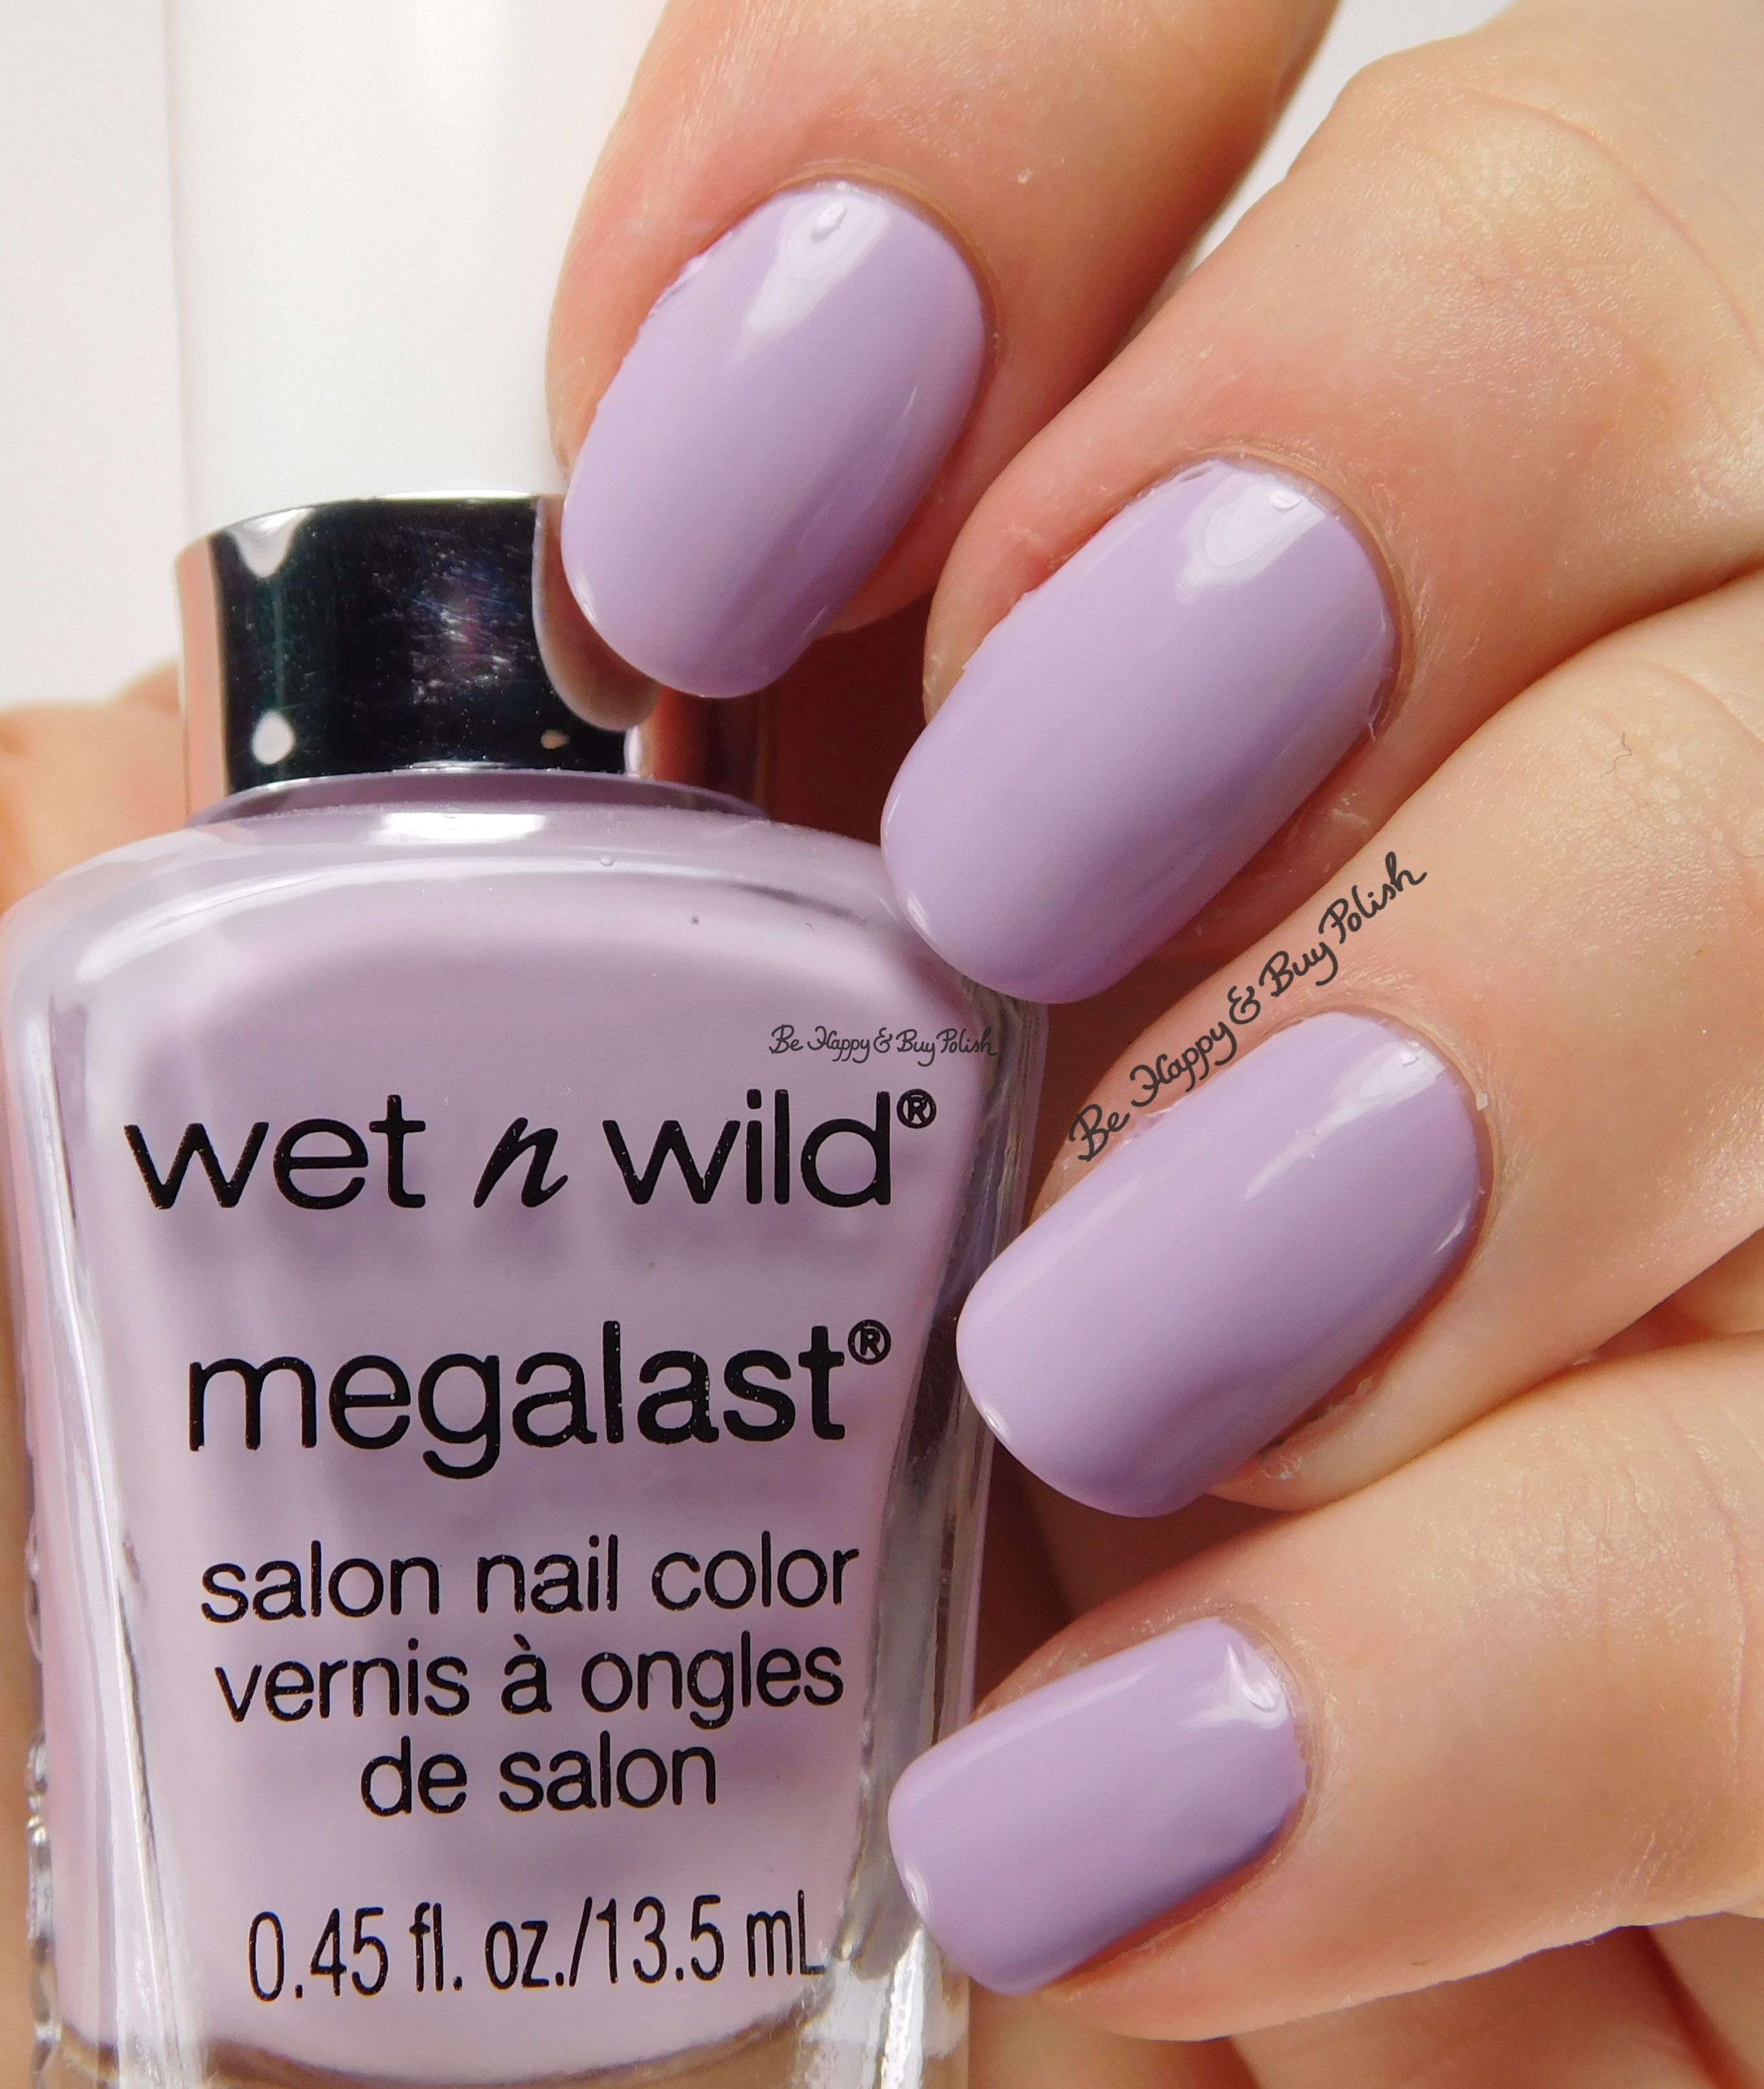 Wet N Wild Spring Into The Nail Polish Swatches Review Plus Megalast Salon Color Candylicious Lay Out In Lavender Be Happy And